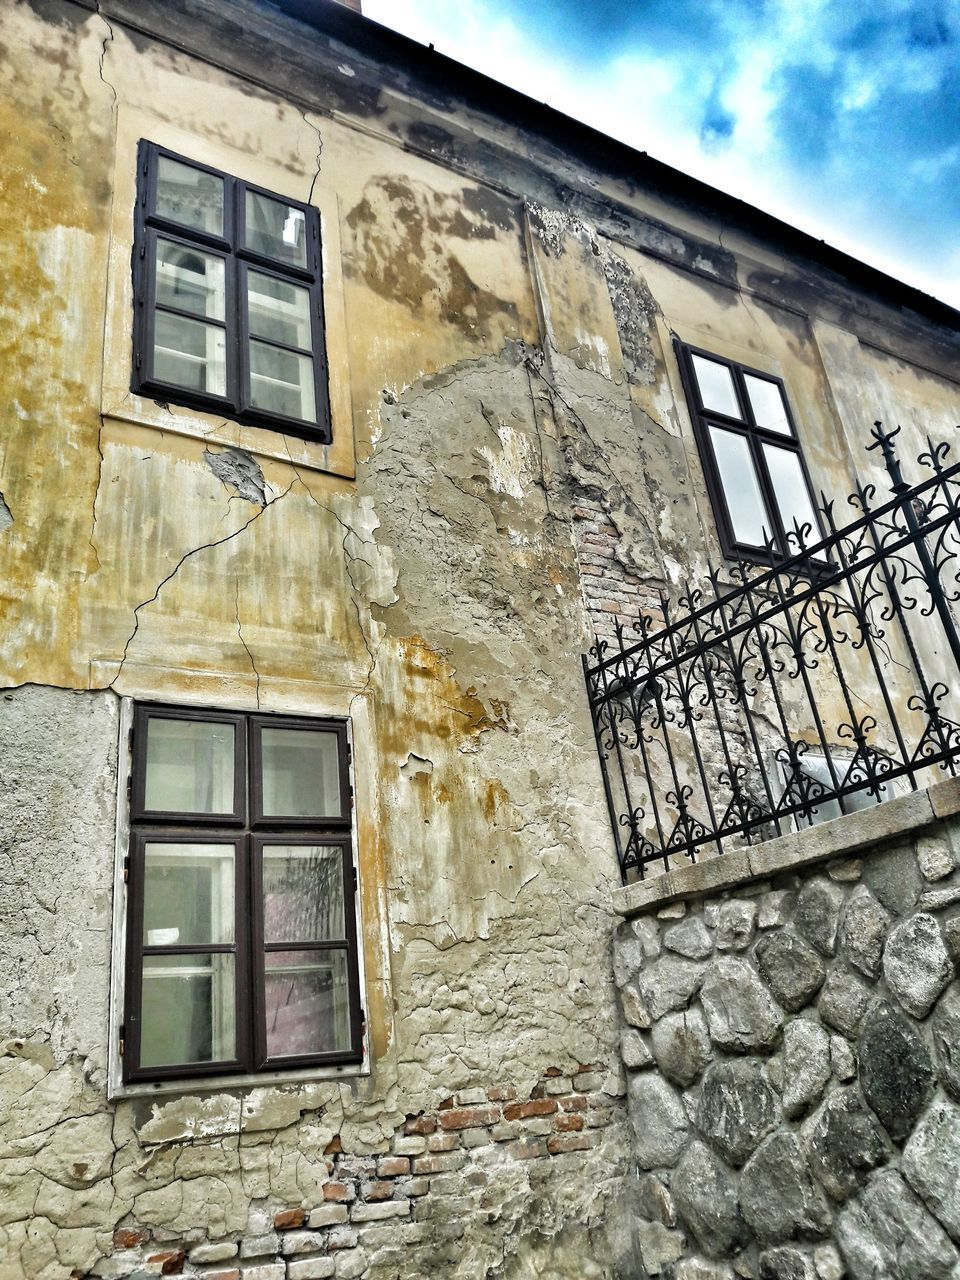 window, architecture, building exterior, built structure, no people, low angle view, outdoors, day, sky